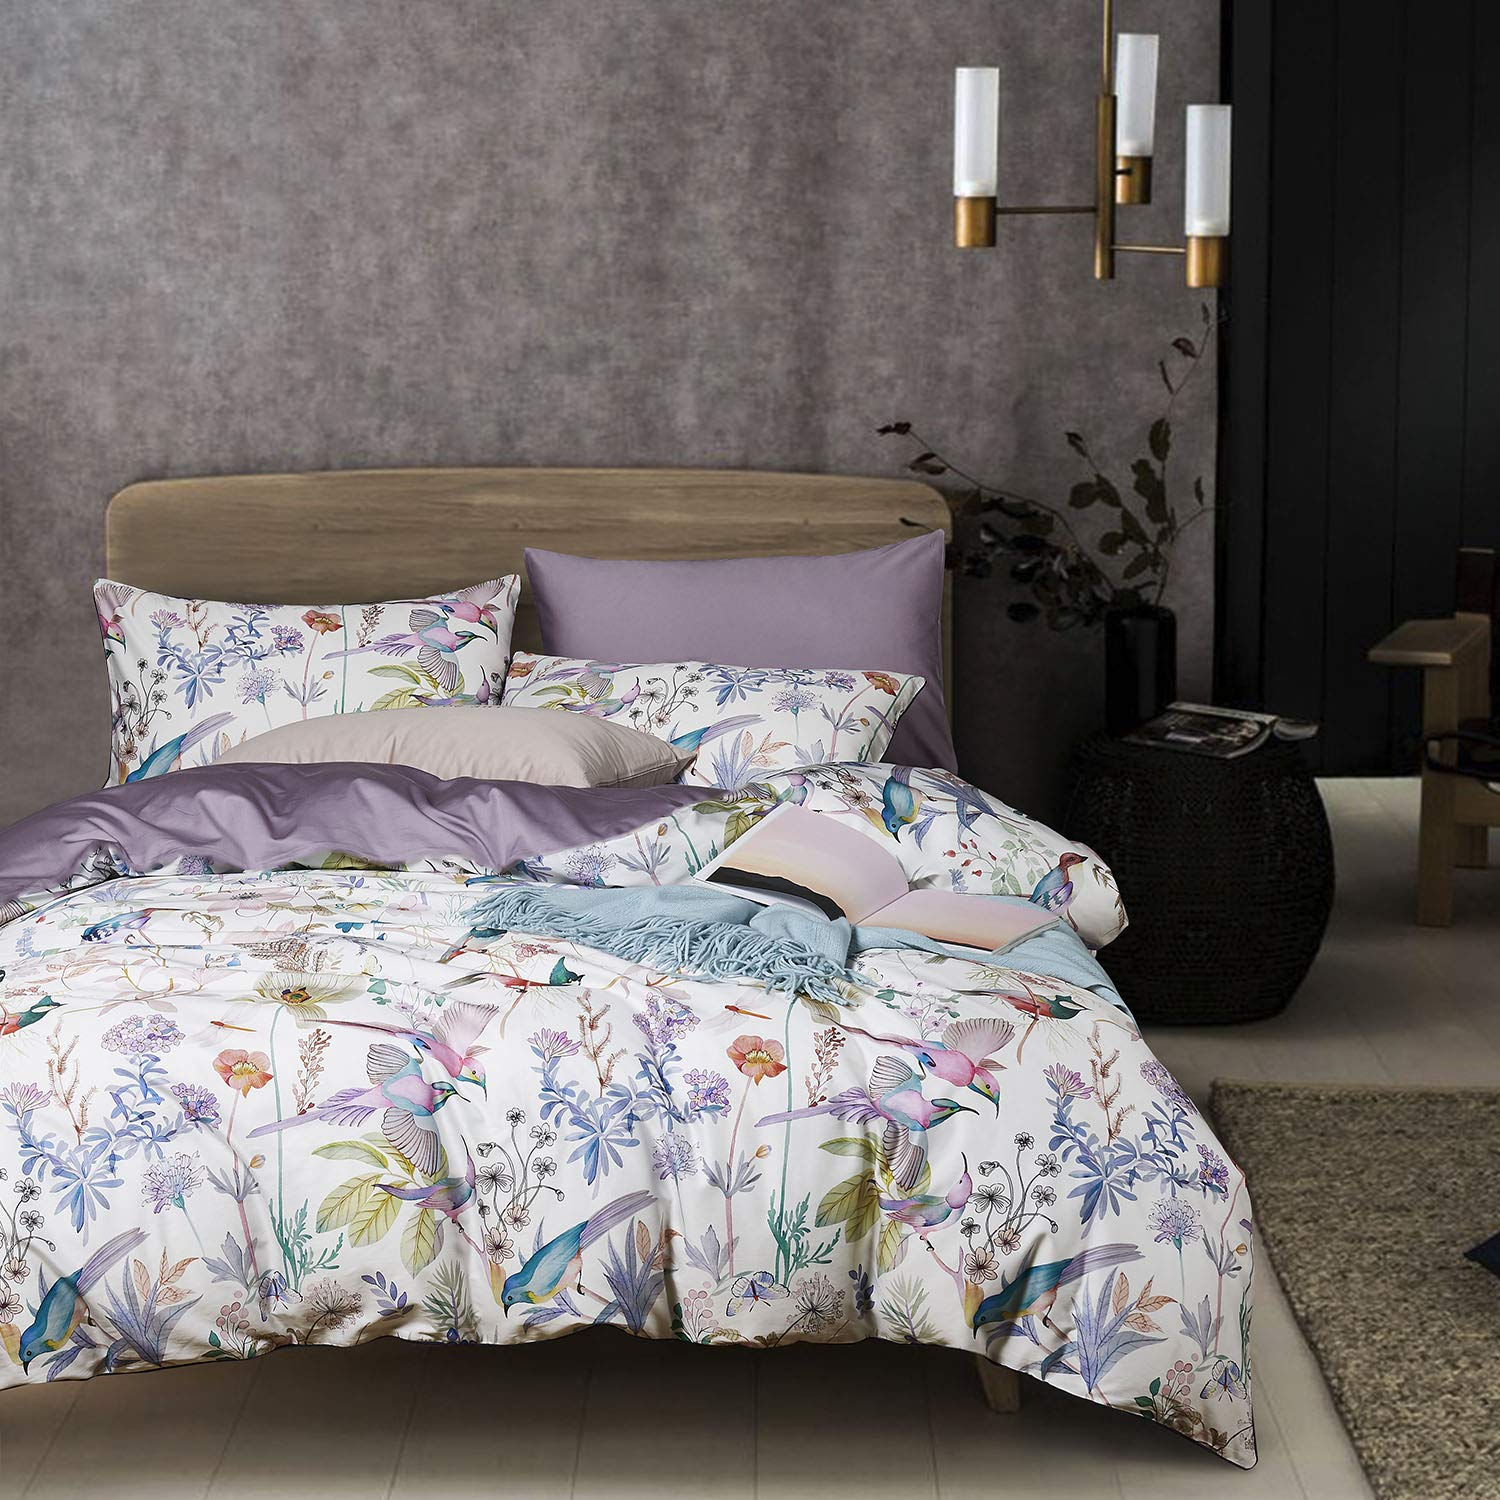 Wake In Cloud - Birds Duvet Cover Set, Sateen Cotton Bedding, Watercolor Botanical Floral Flower Tree Leaves Pattern Printed in Light Purple Lilac, with Zipper Closure (3pcs, Queen Size)